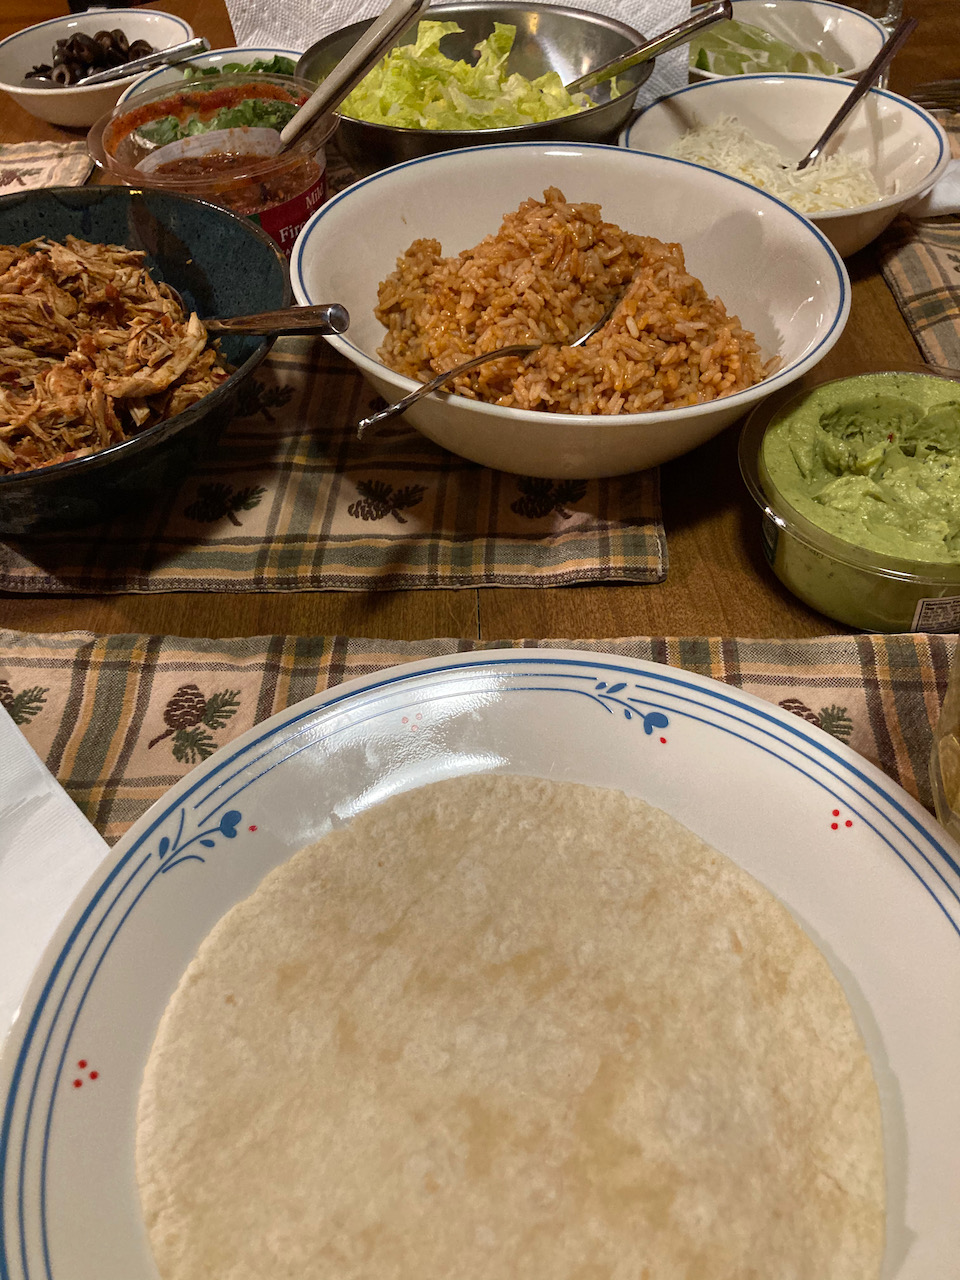 Table with Mexican rice, tortillas, guacamole, shredded chicken, salsa, cheese, lettuce, and black olives.